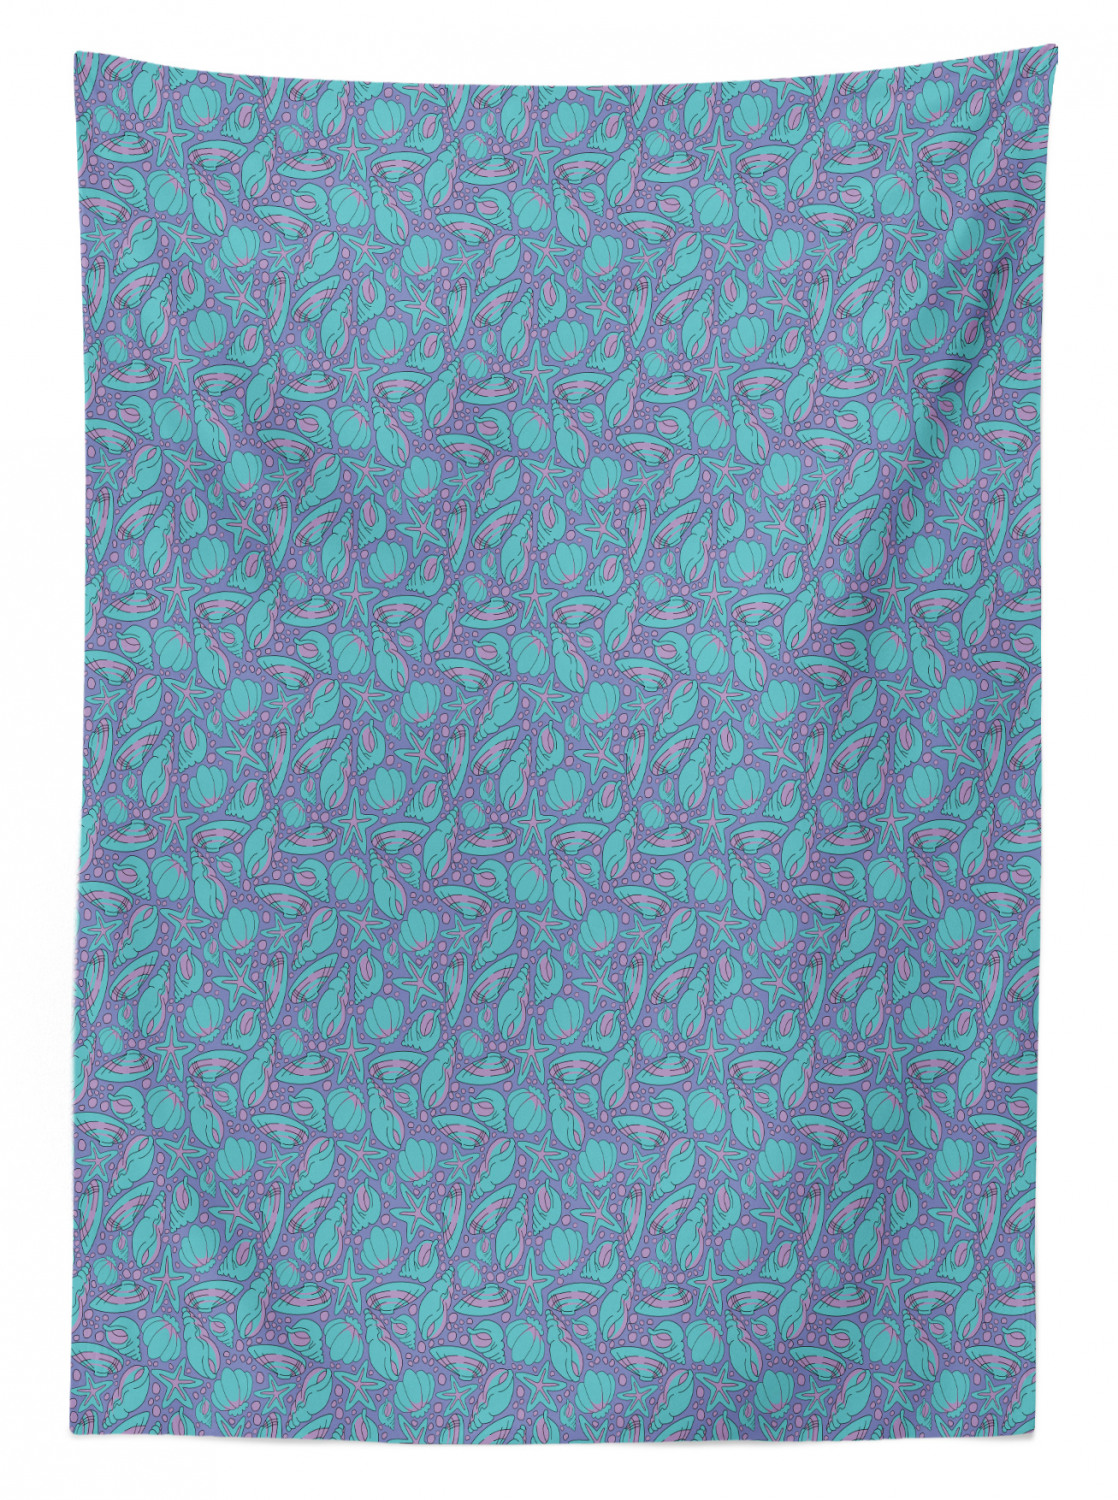 thumbnail 5 - Ambesonne Marine Pattern Tablecloth Table Cover for Dining Room Kitchen